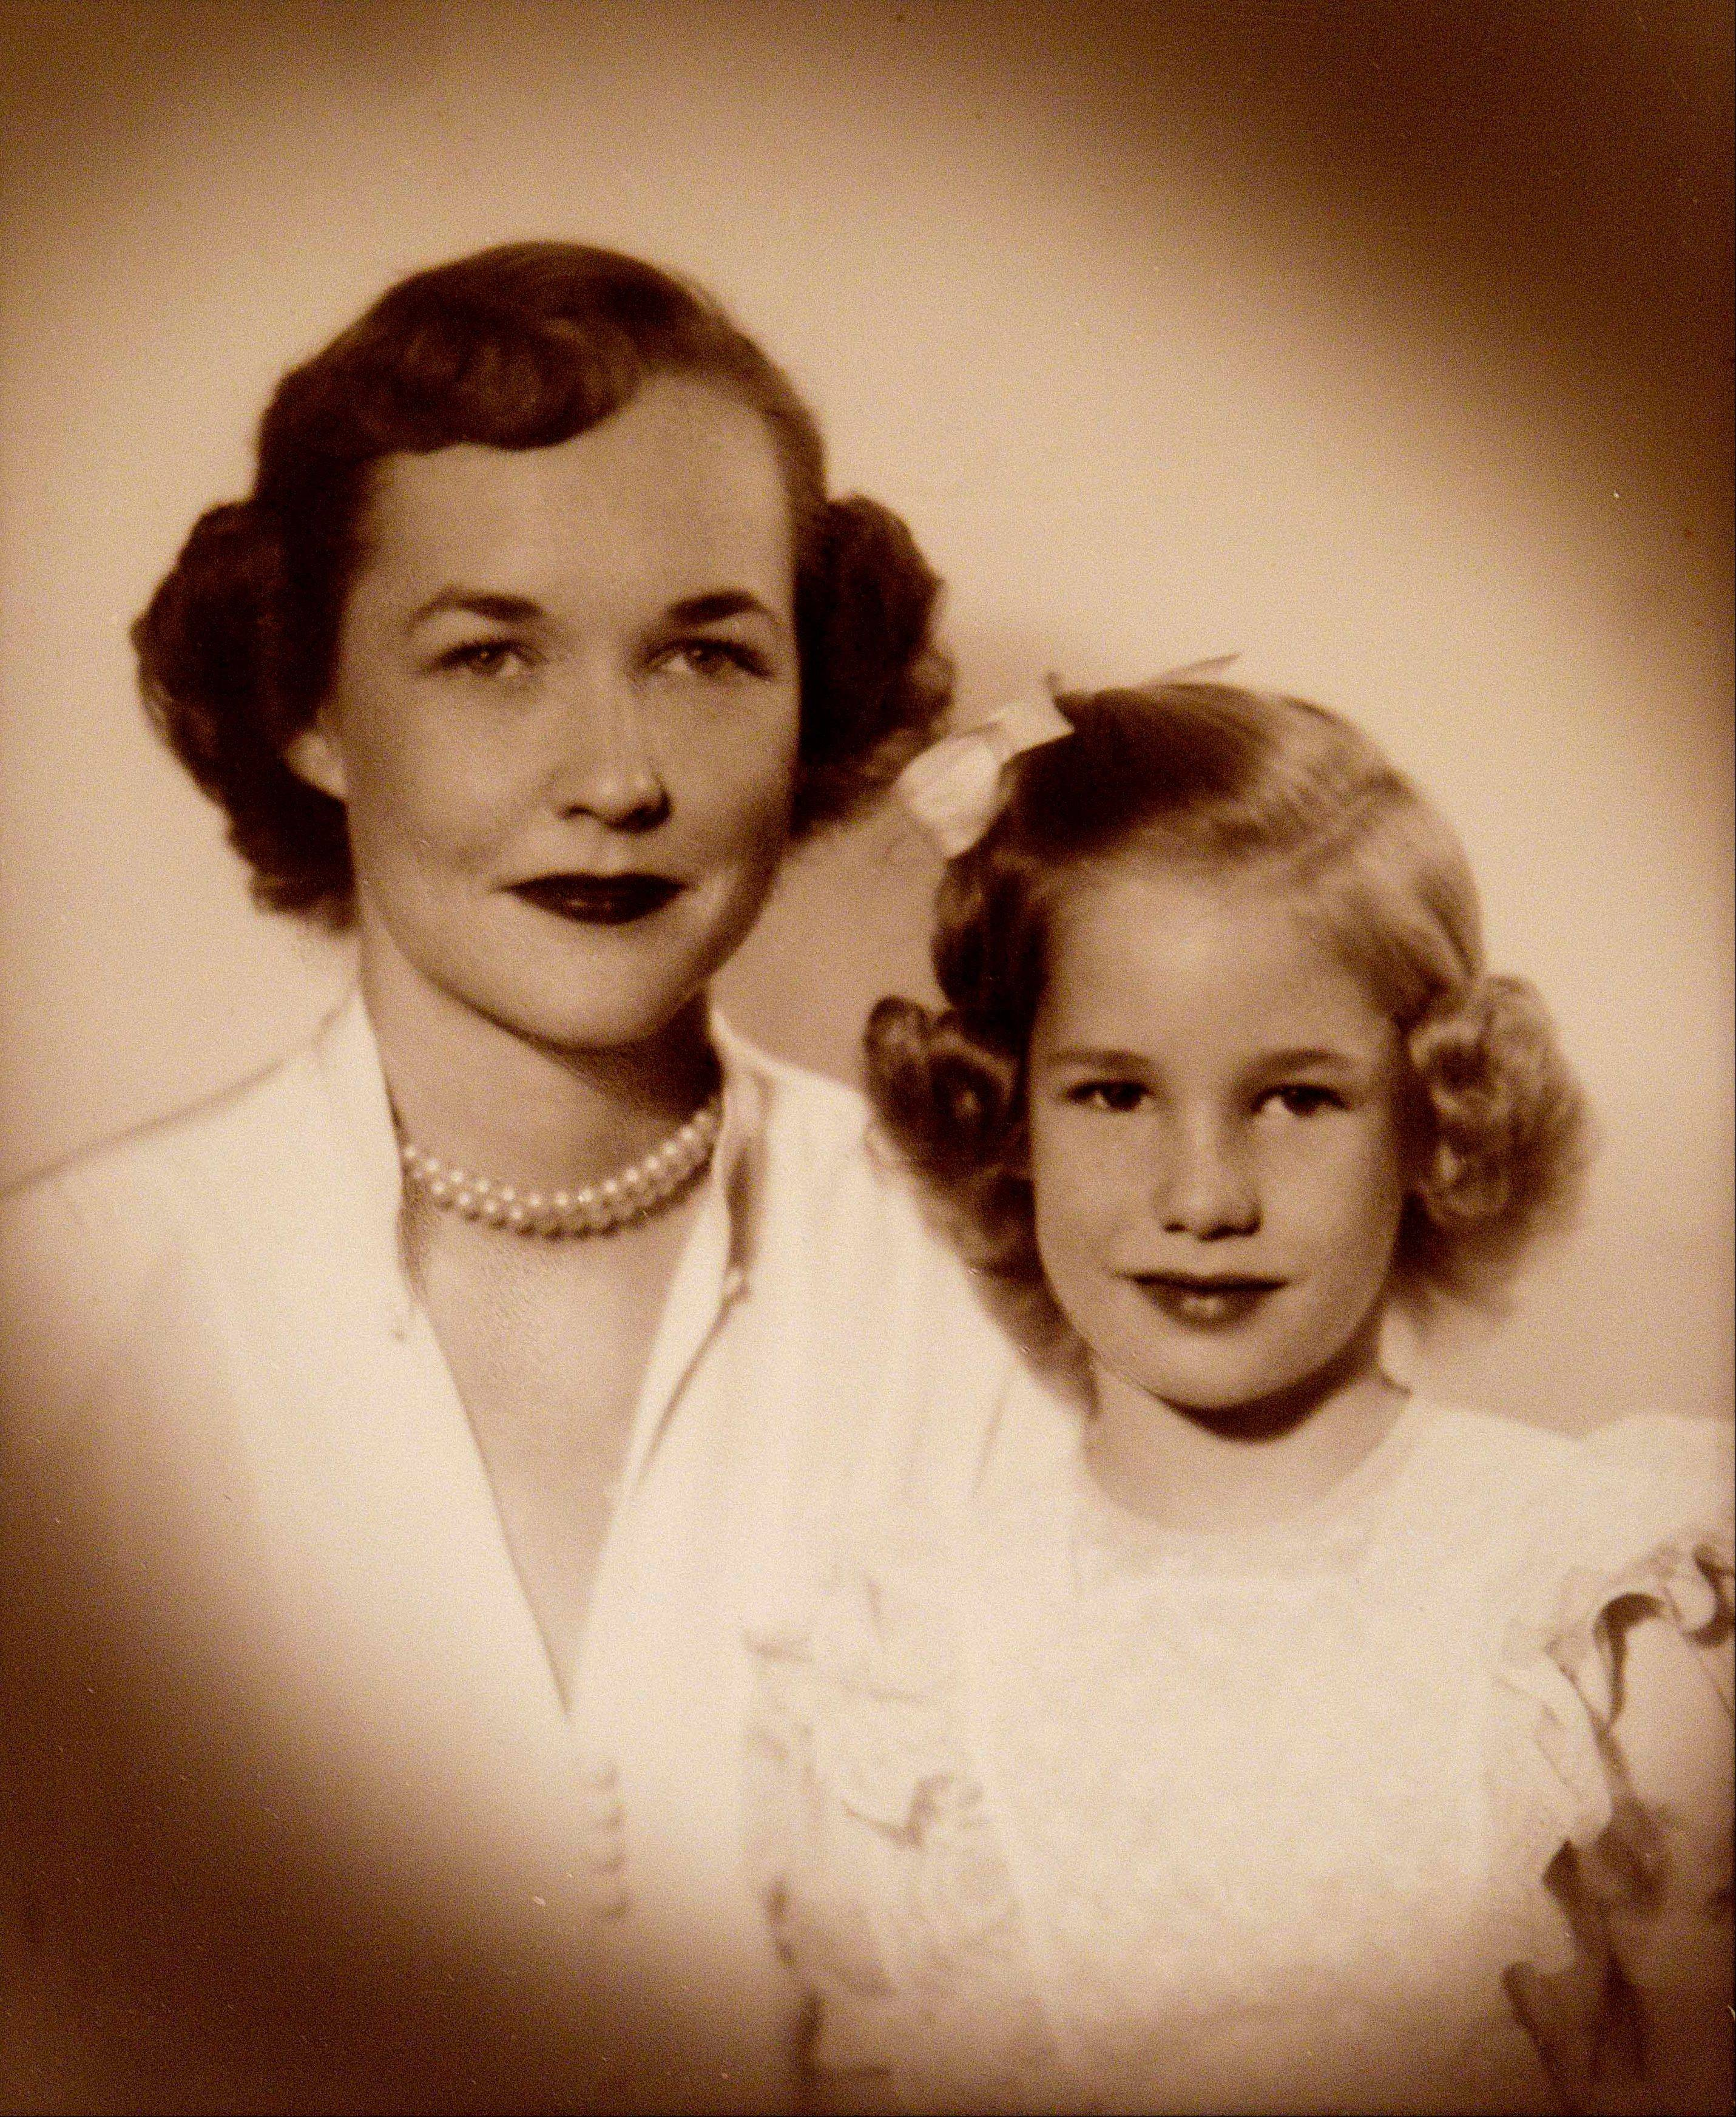 This undated photo provided by Penny Hart shows Hart as a young girl, right, and her mother, Henrietta Collier Armstrong Ayer who died fifty years ago in a plane crash, is seen in Hart's home Friday, May 4, 2012, in Atlanta. Hart was a 19-year-old college sophomore studying at the Sorbonne when her mother was aboard the returning chartered Air France plane carrying a group of Atlanta's cultural leaders that crashed on takeoff at Orly Field in Paris.